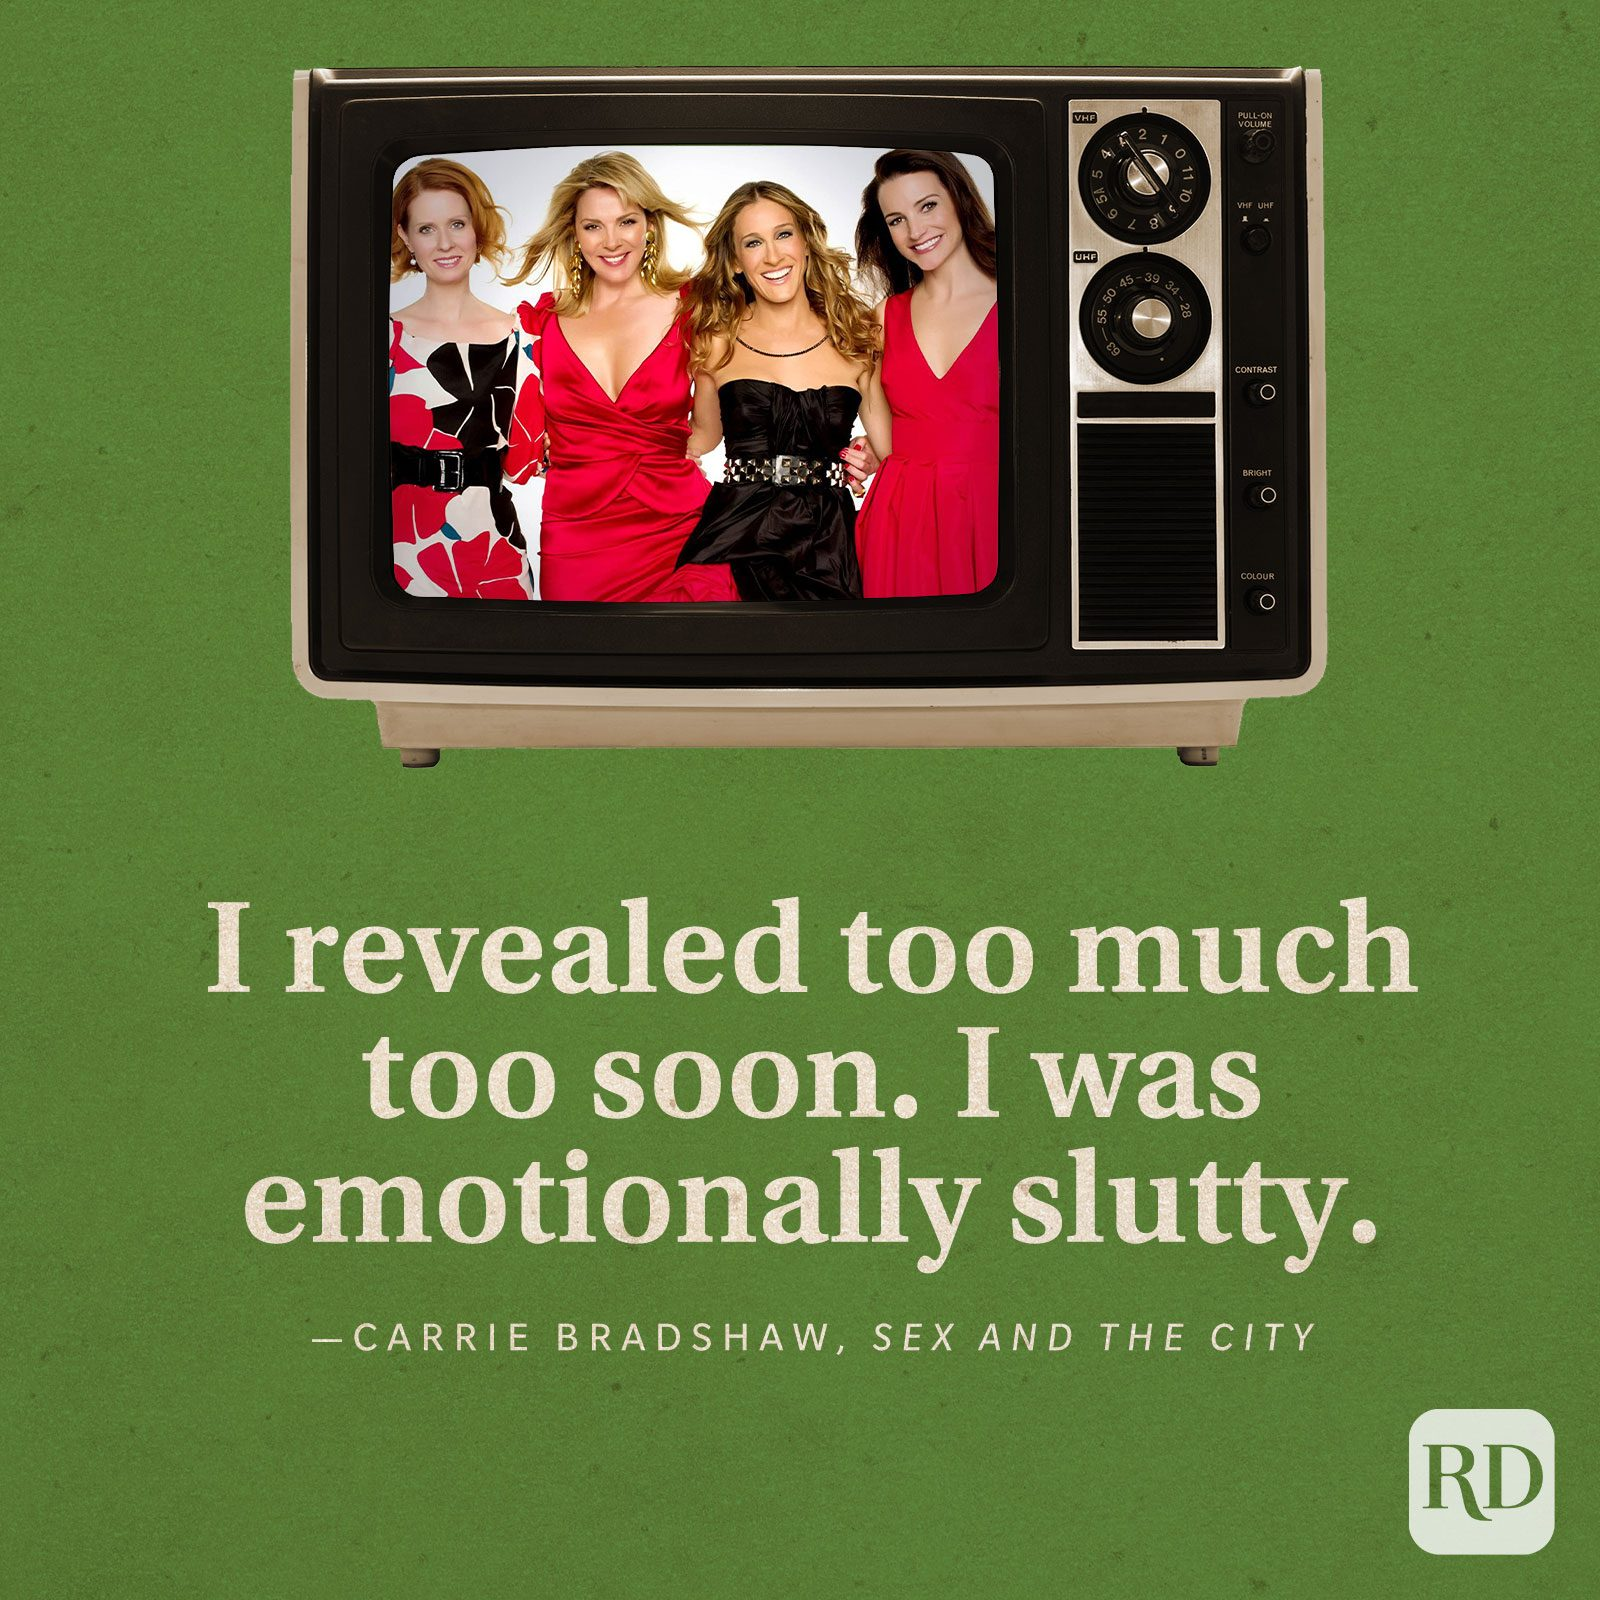 """""""I revealed too much too soon. I was emotionally slutty."""" -Carrie Bradshaw in Sex and the City."""